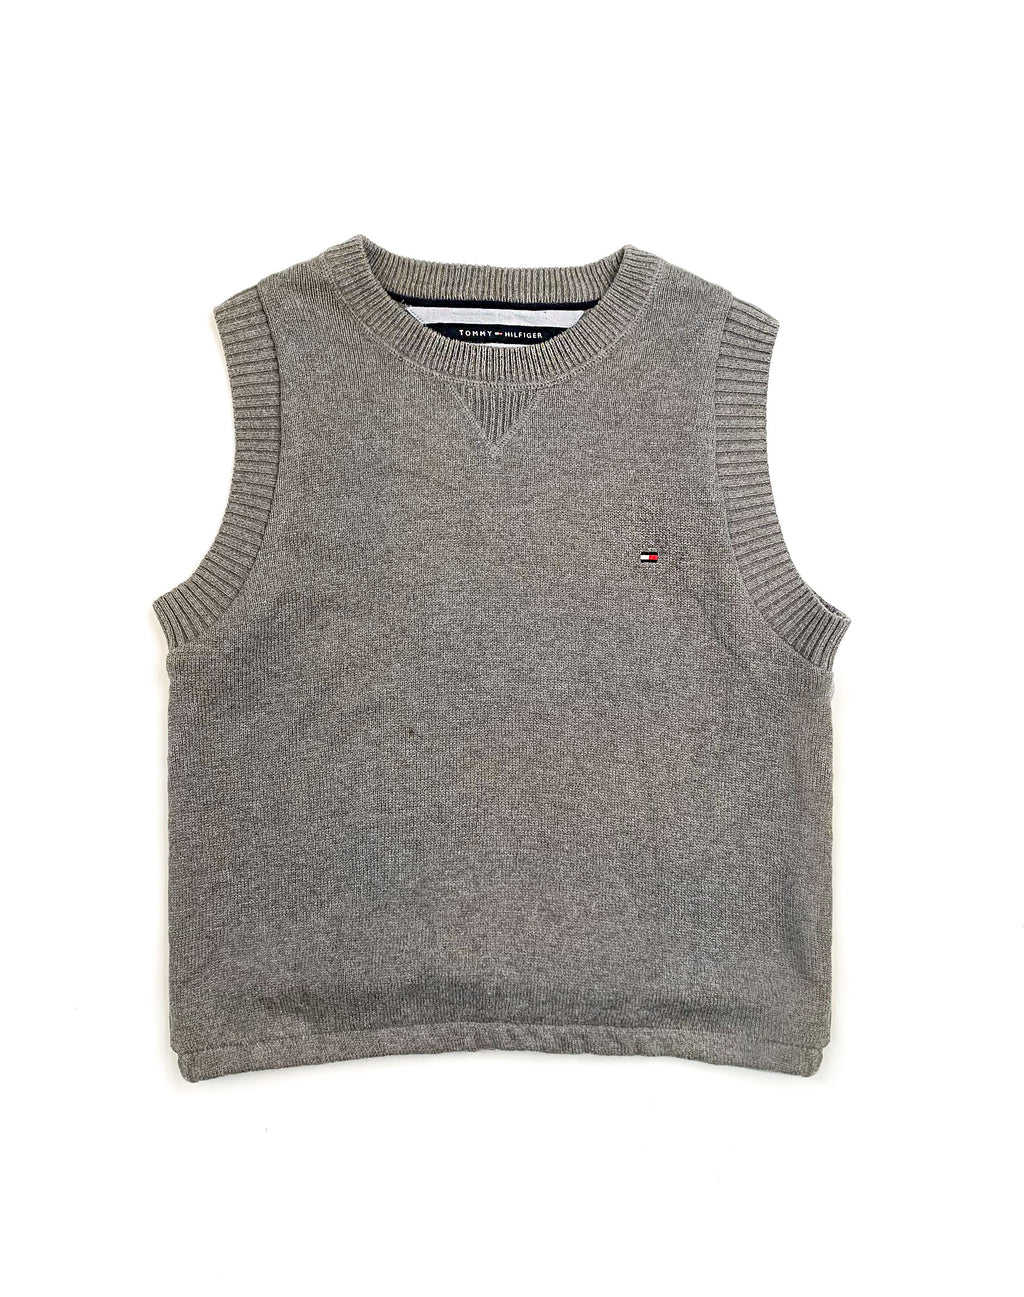 TOMMY HILFIGER GREY SWEATER VEST